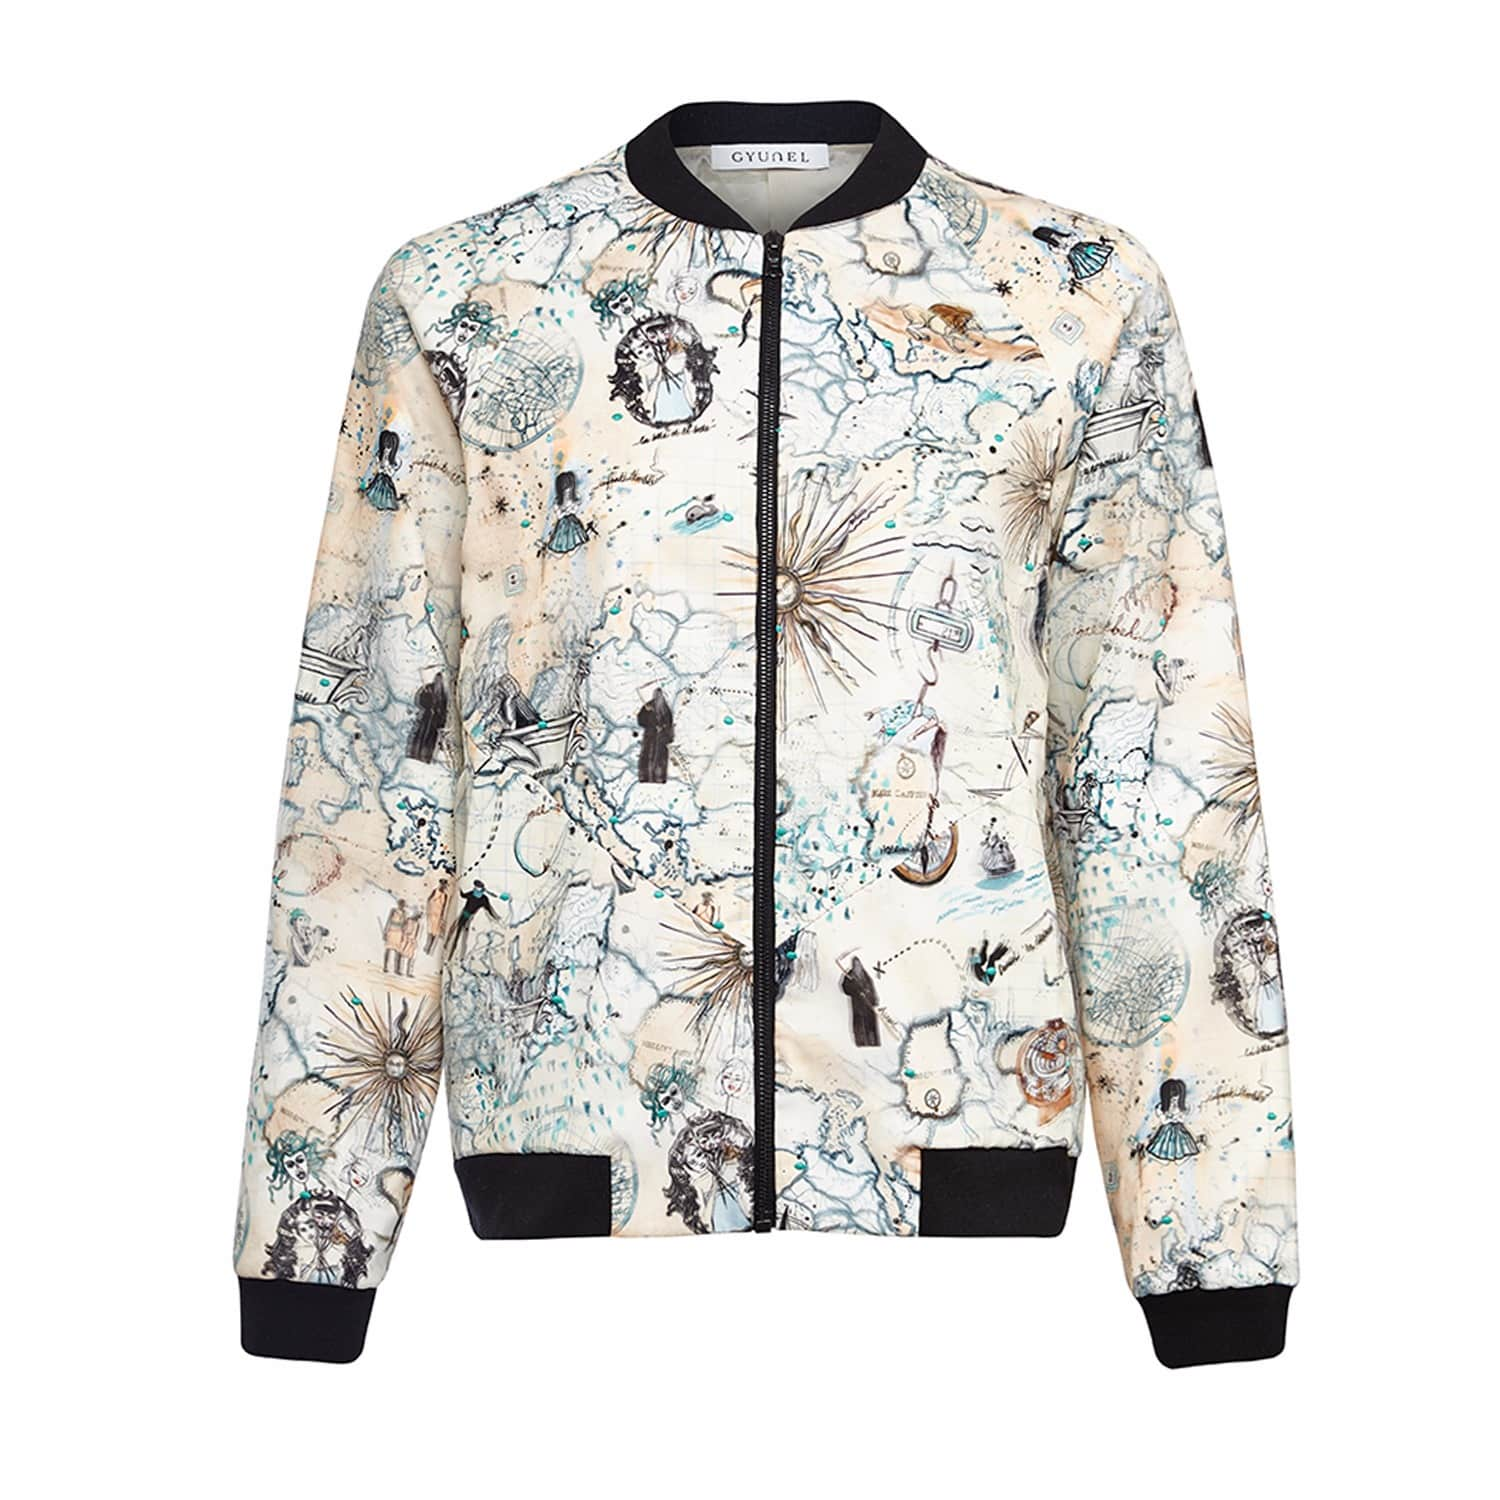 9566a4f53 Bomber Jacket by Gyunel